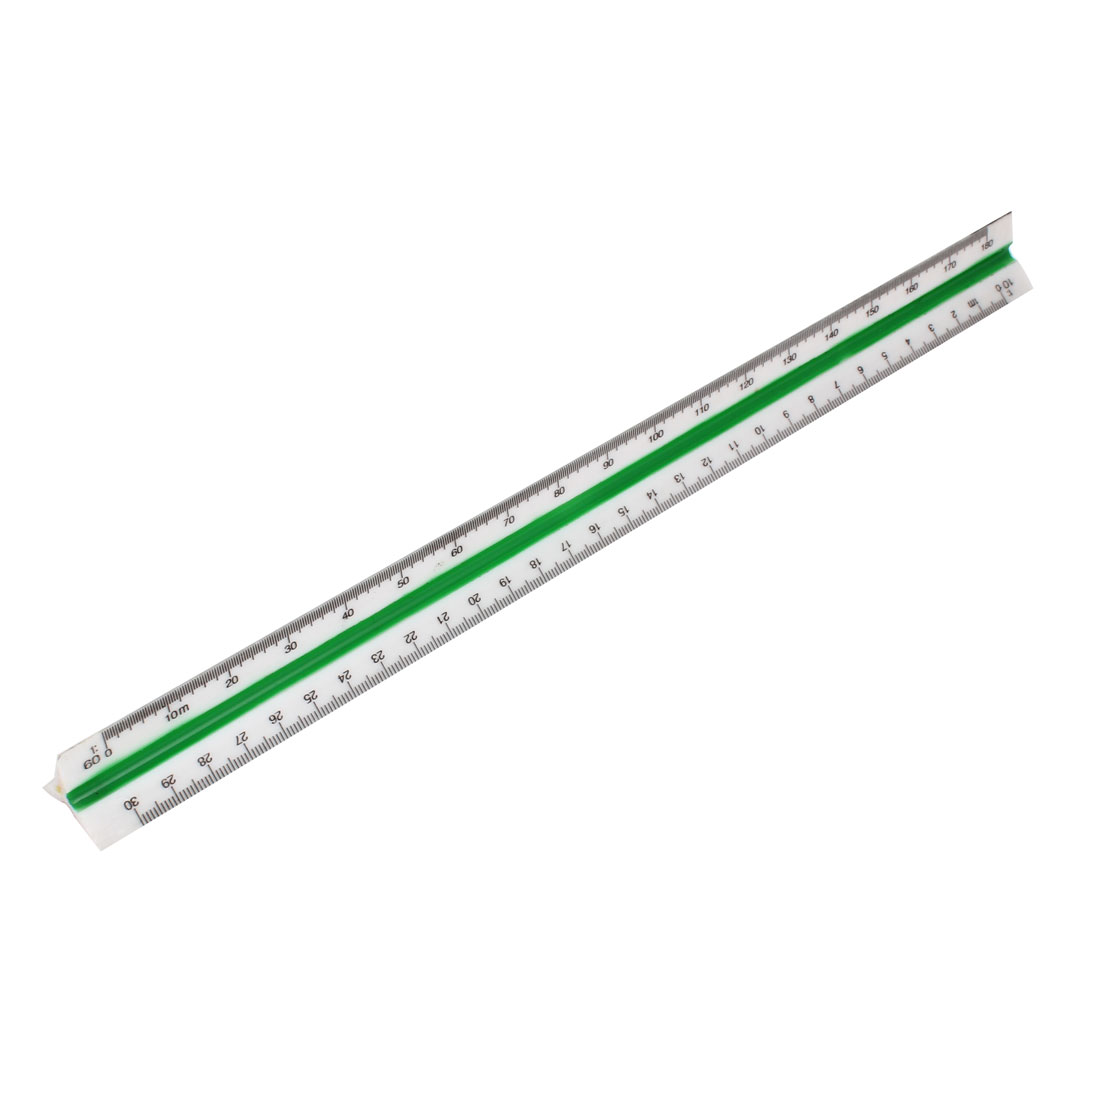 1:10 1:20 1:30 1:40 1:50 1:60 Six Type Metric Triangular Scale Ruler